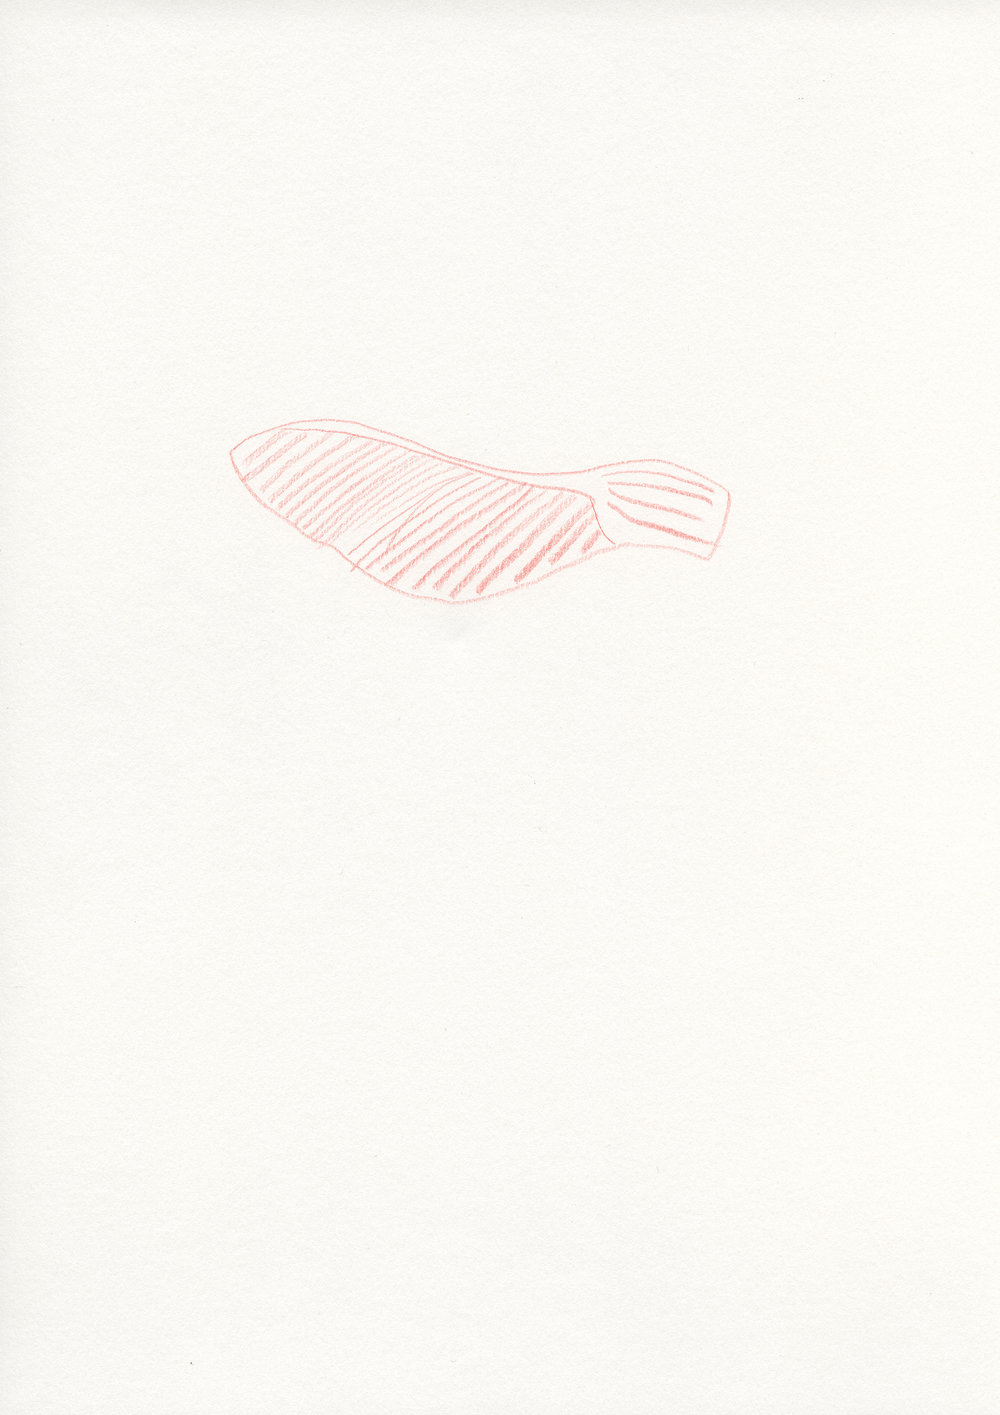 Untitled, 2013, color pencil on paper, 21 x 29,7 cm